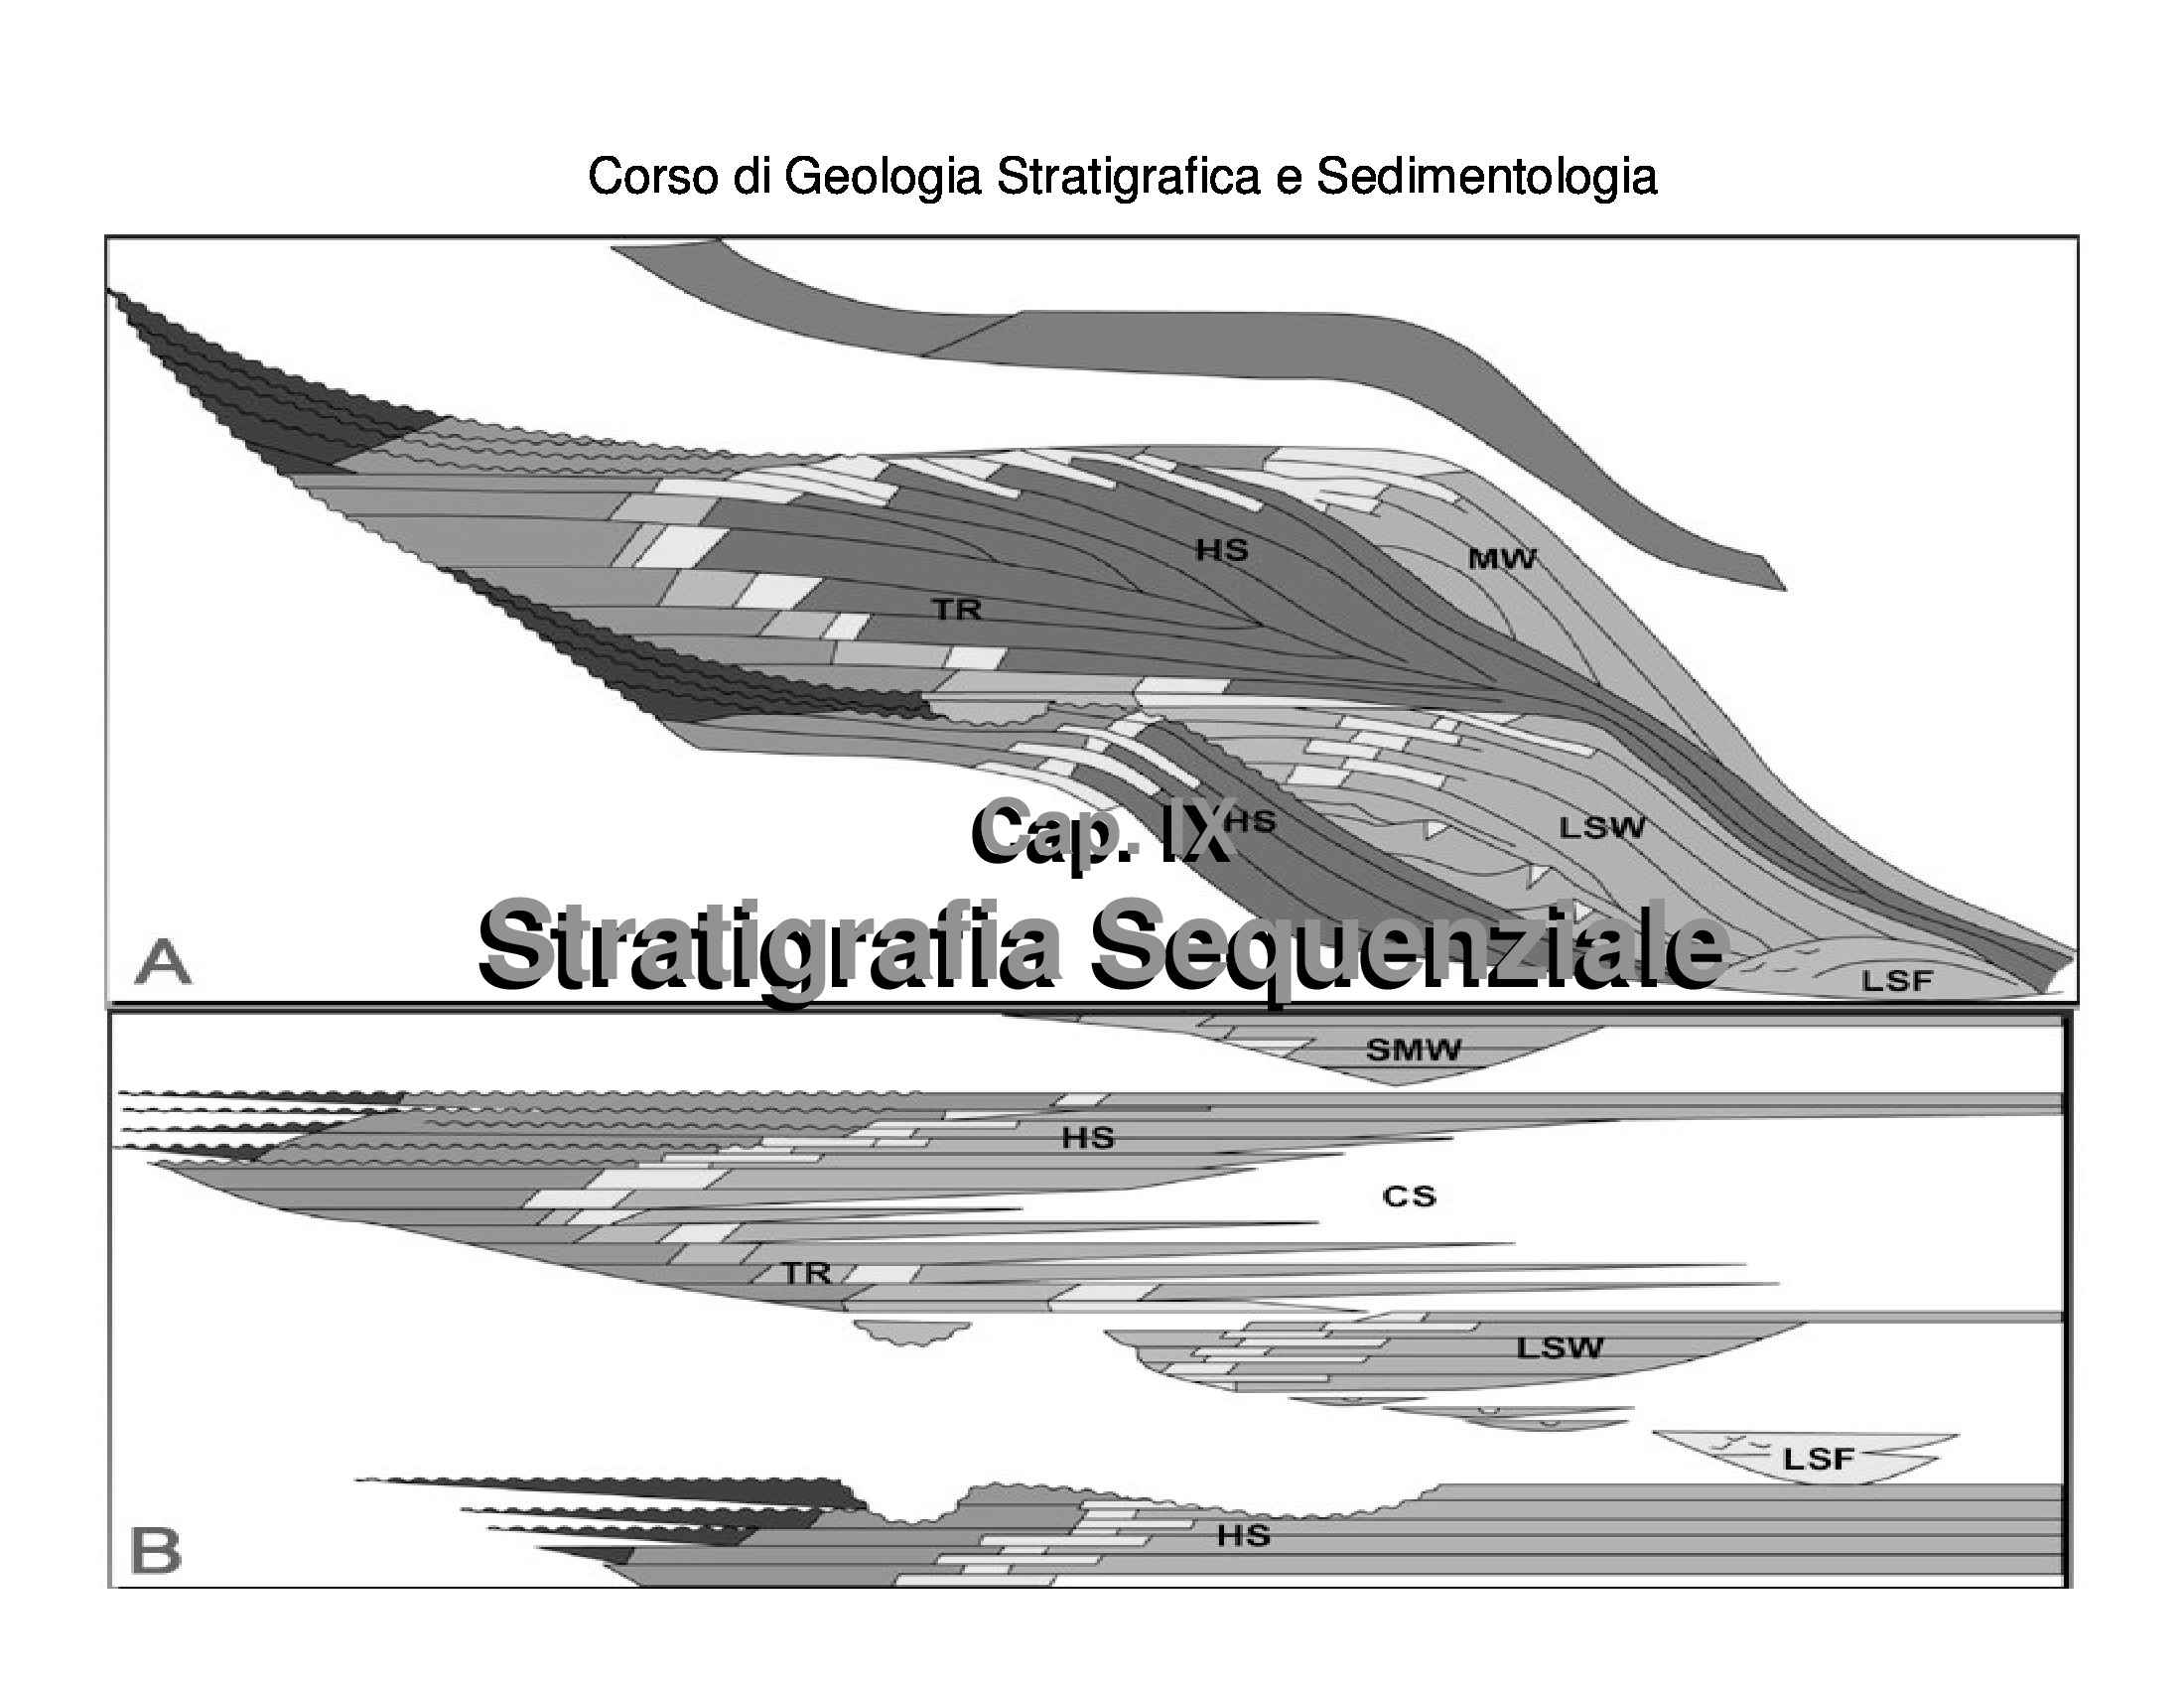 Stratigrafia sequenziale